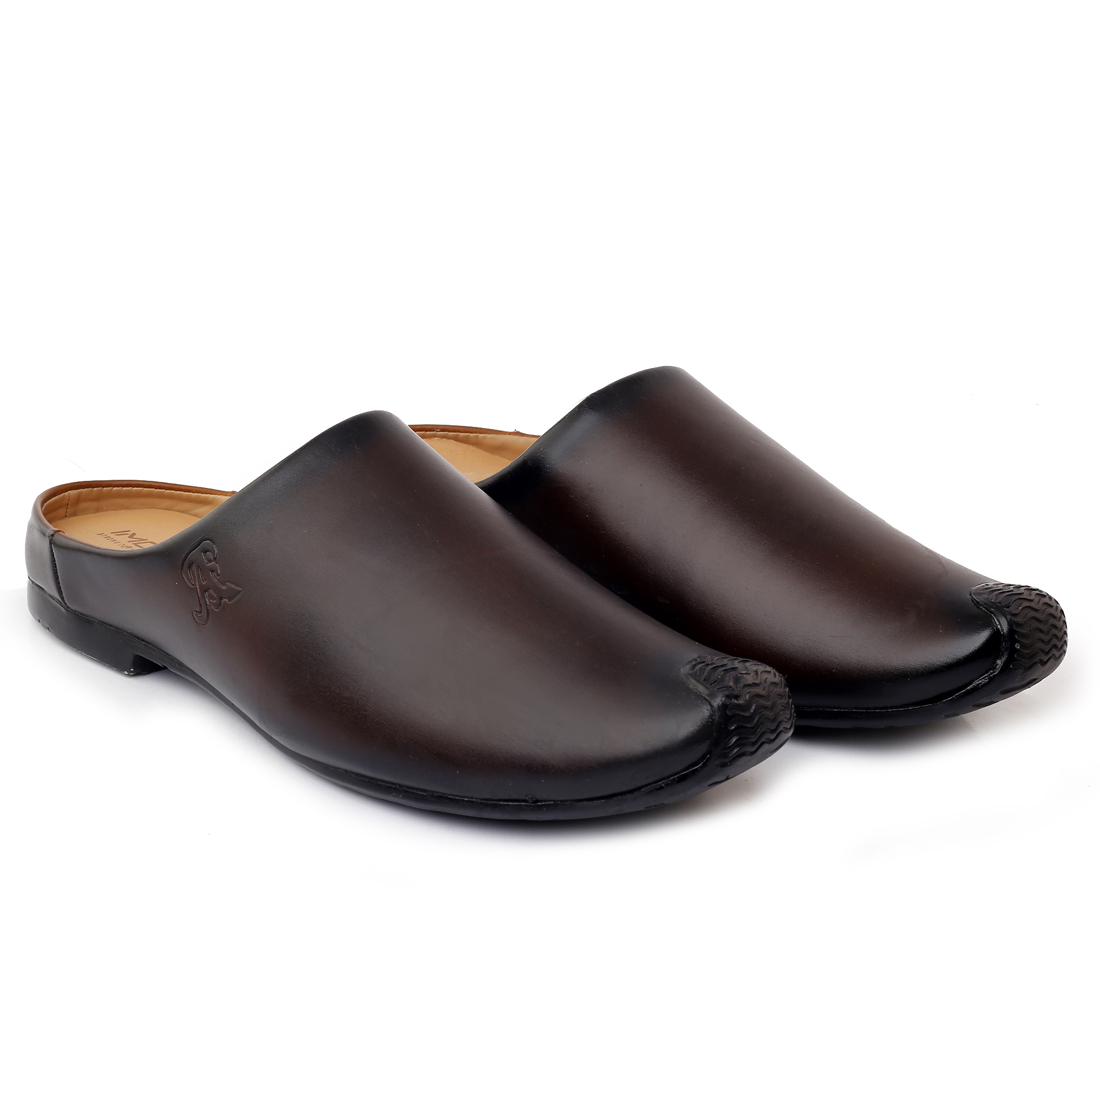 IMC543A.35940_BR FANCY & GOOD-LOOKING BANTU STYLI LOAFER SHOE FOR MEN IMC543A.35940_BR (BROWN, 7TO10, 4 PAIRS)